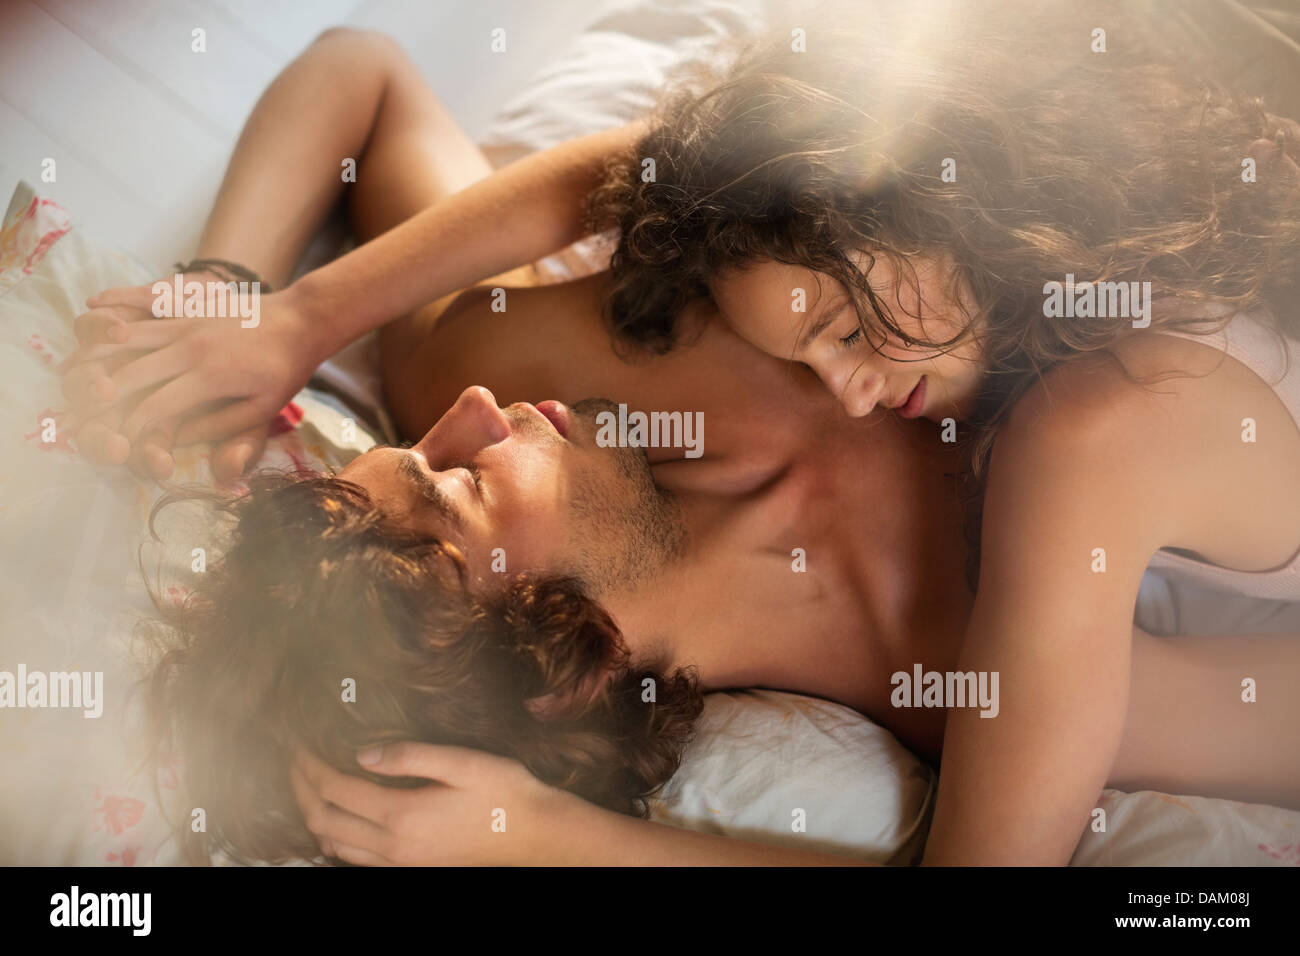 Couple relaxing together in bed - Stock Image